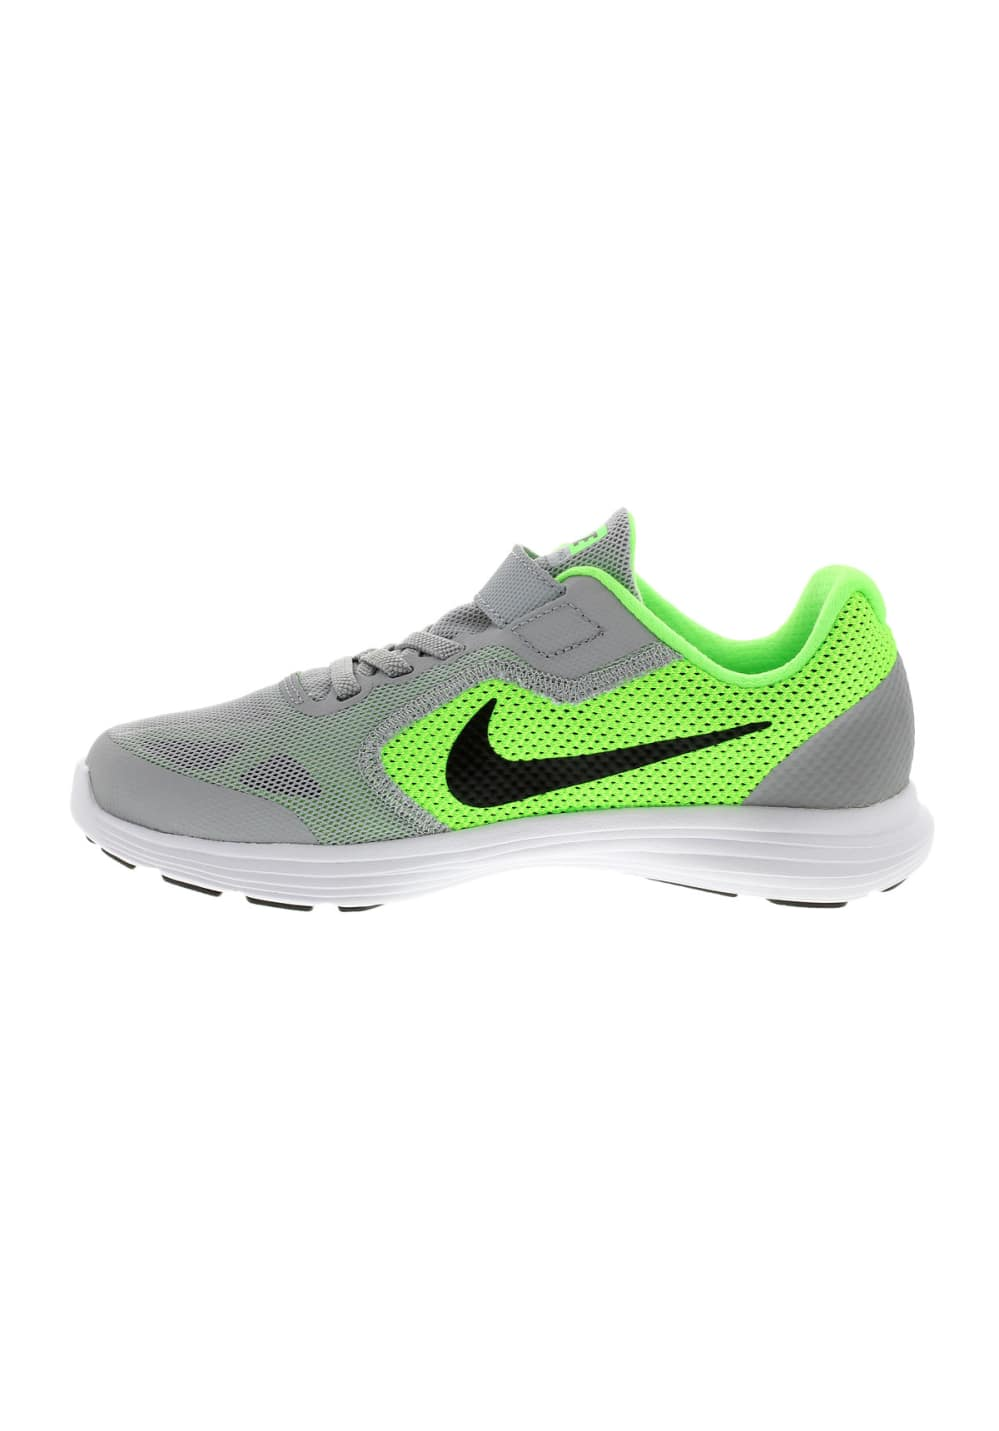 Ps Fitness 3 Nike Revolution Chaussures Gris 54ARj3L